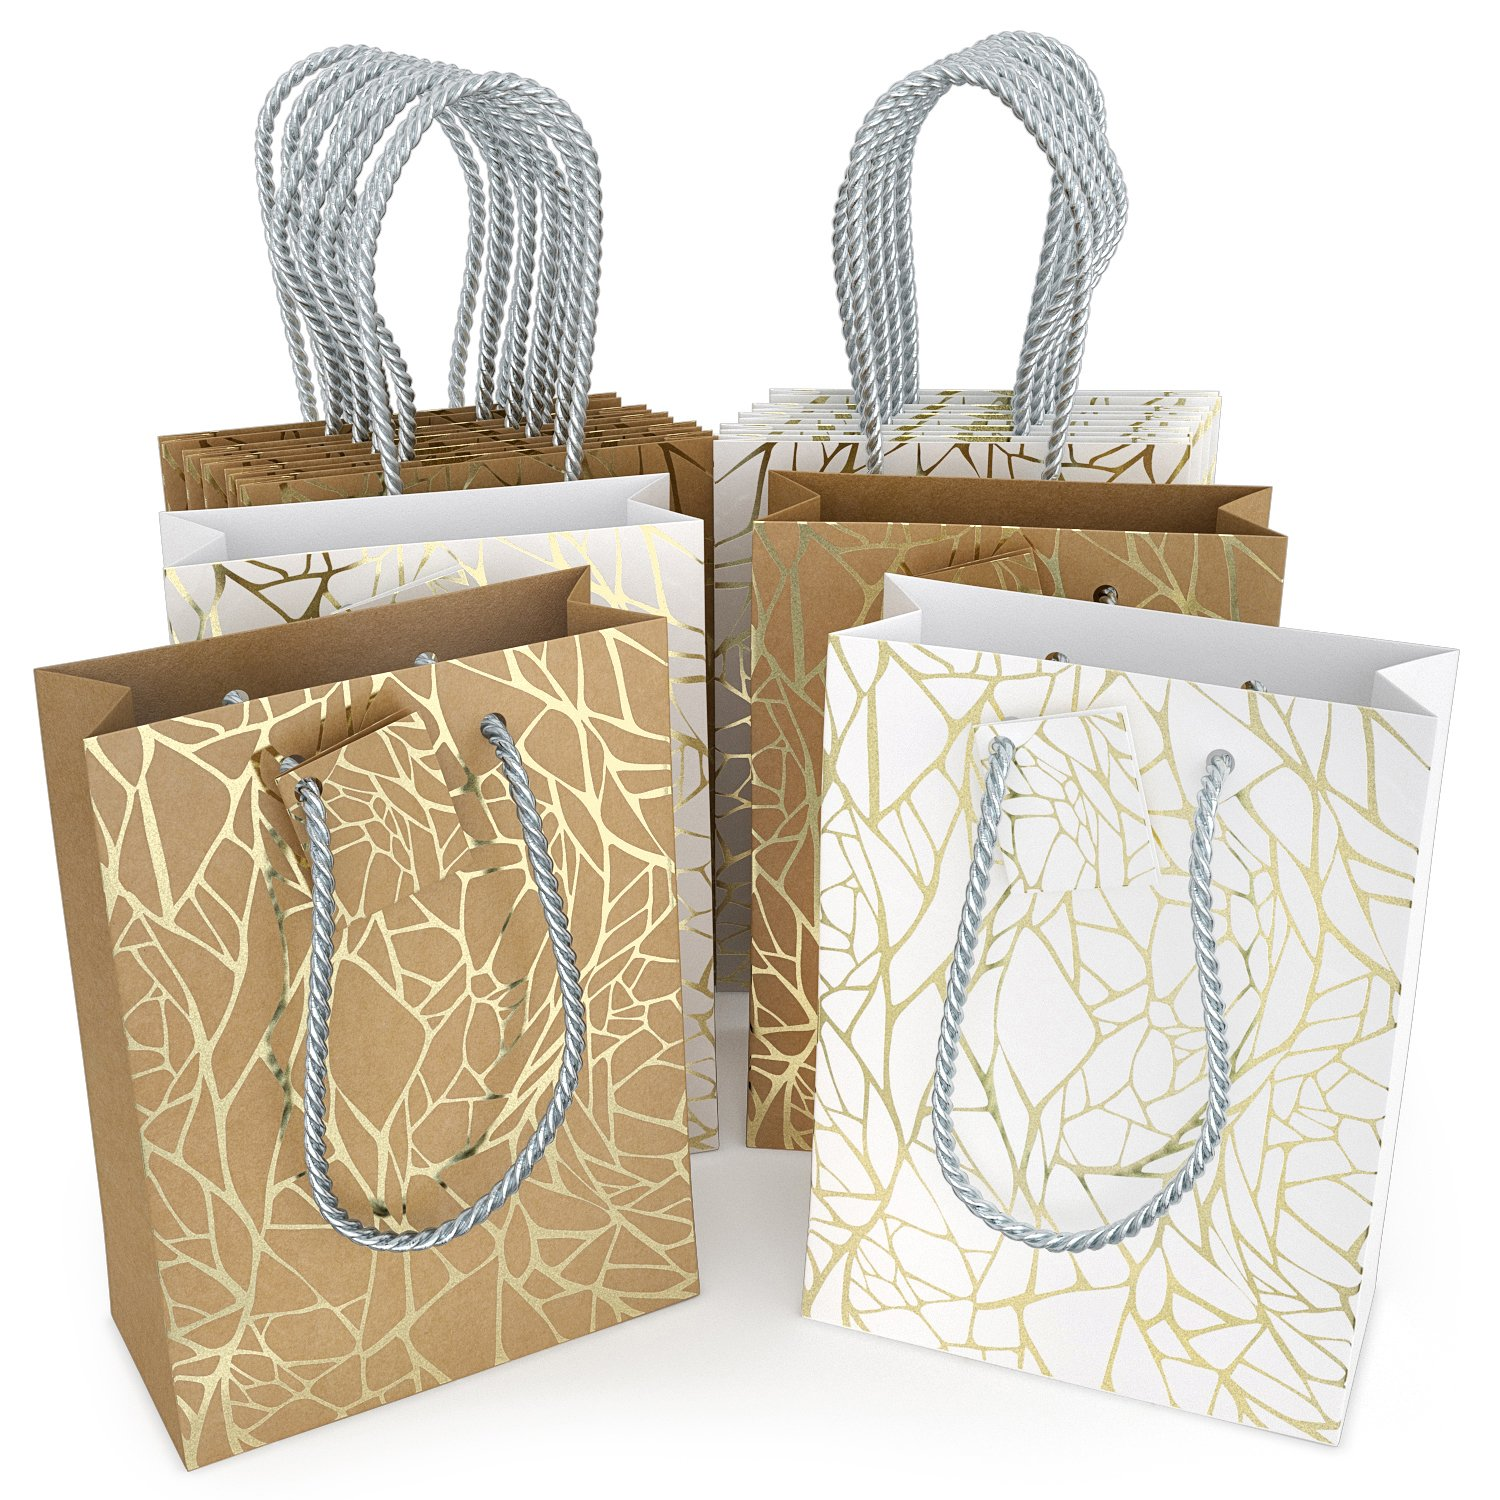 Glogex Gift Bags, Kraft Paper Gifts Bag for Birthday, Weddings Presents (Set of 14 Bags, 2 Crack Designs)